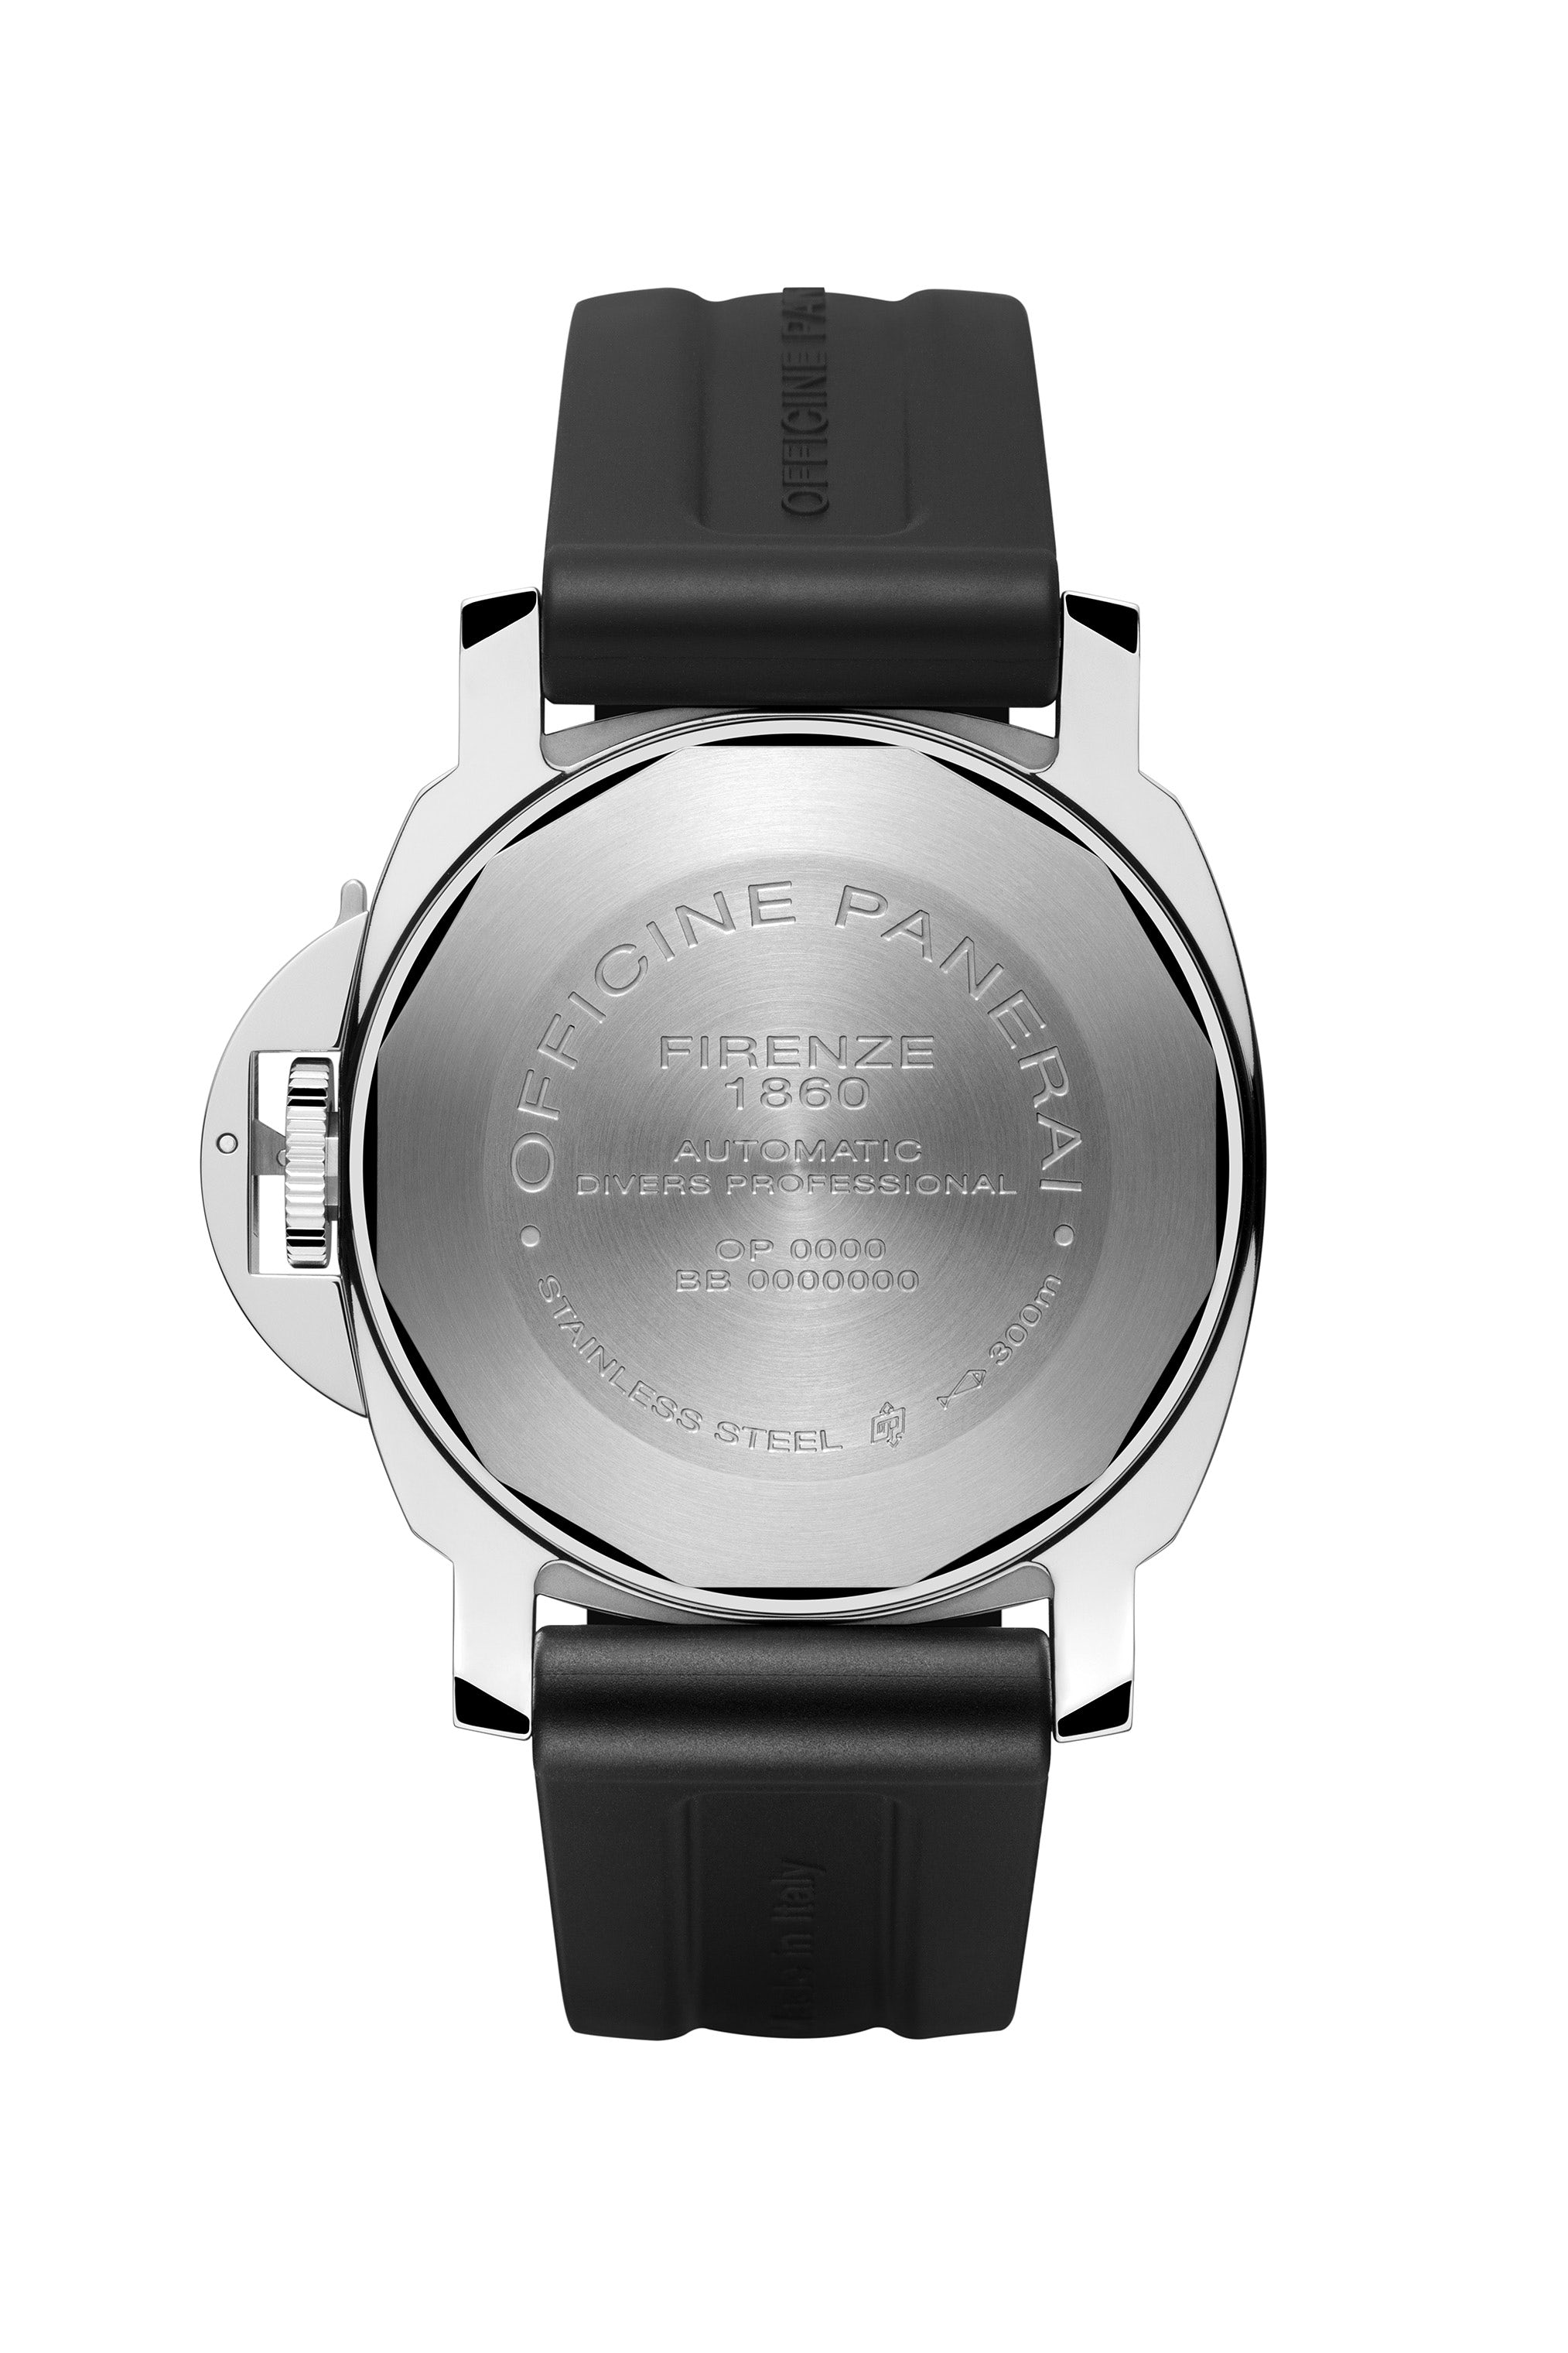 PAM00731 | PAM 731 | E-BOUTIQUE EDITION